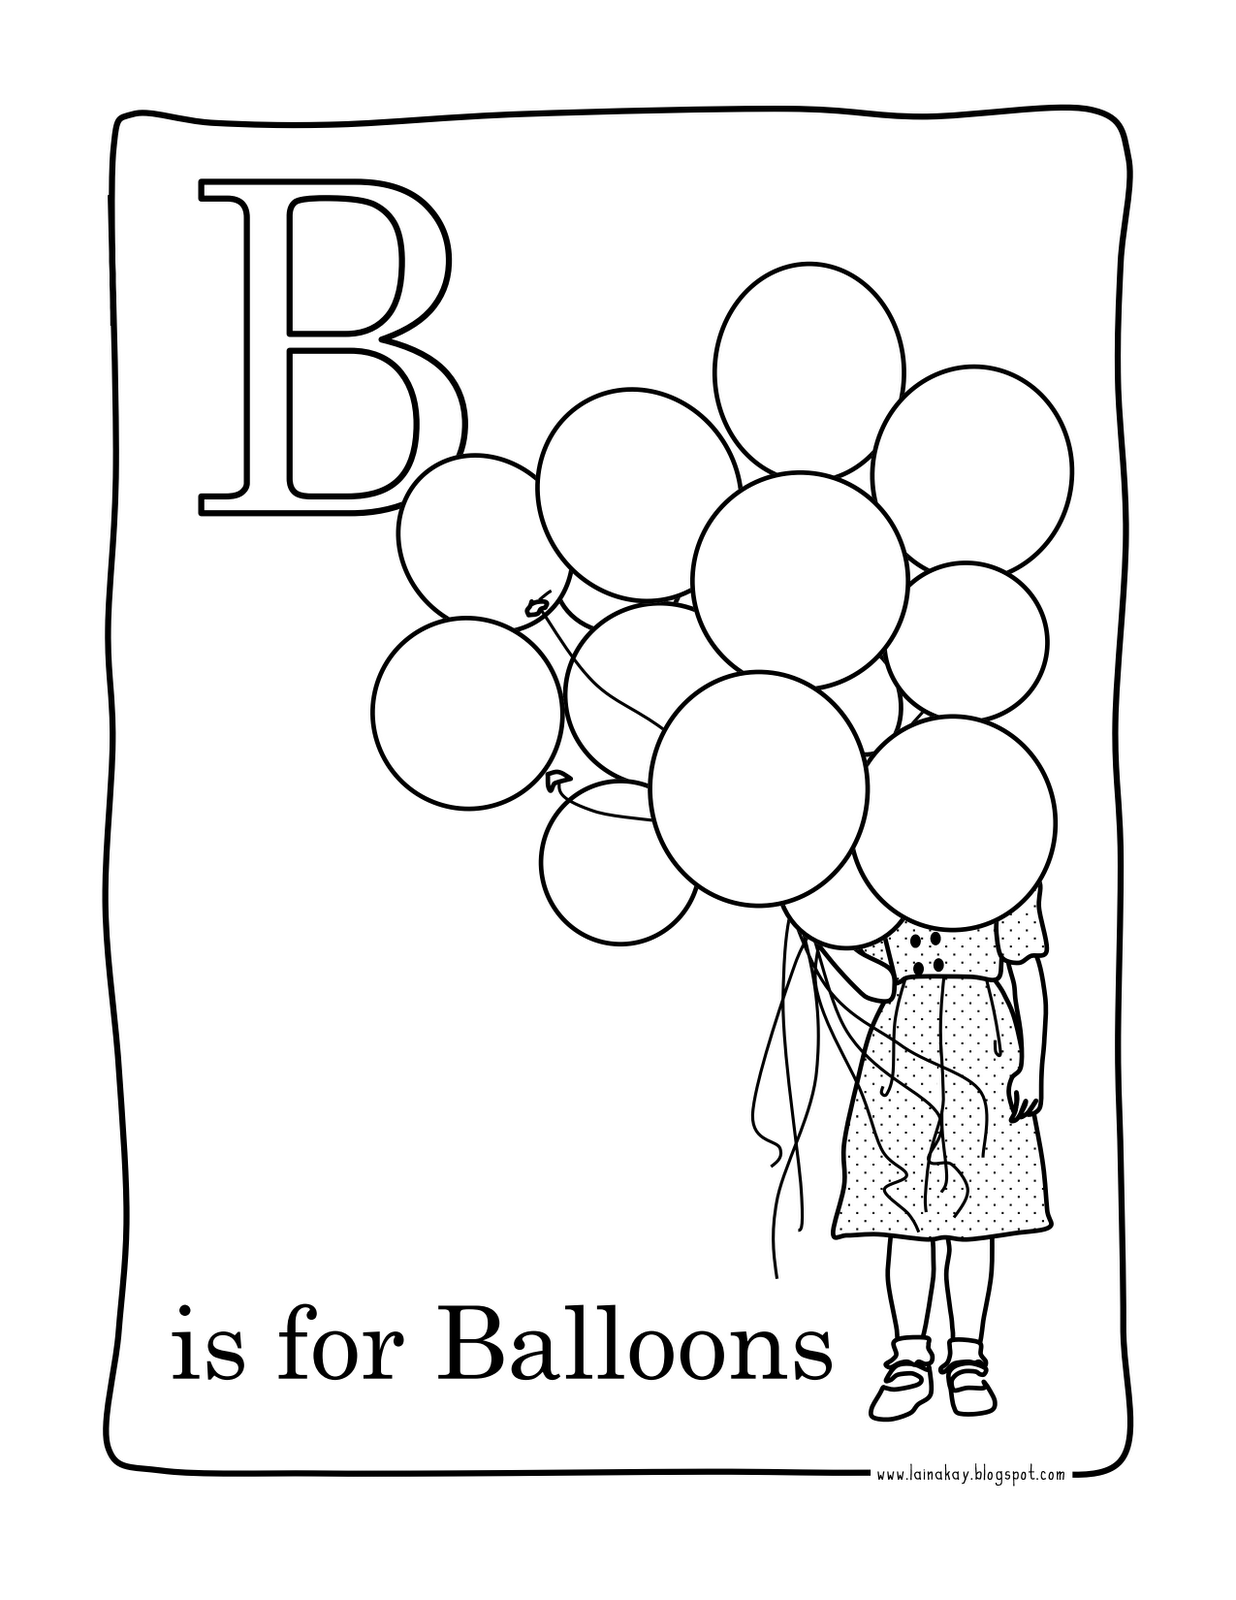 Goodness Gracious B Is For Balloons